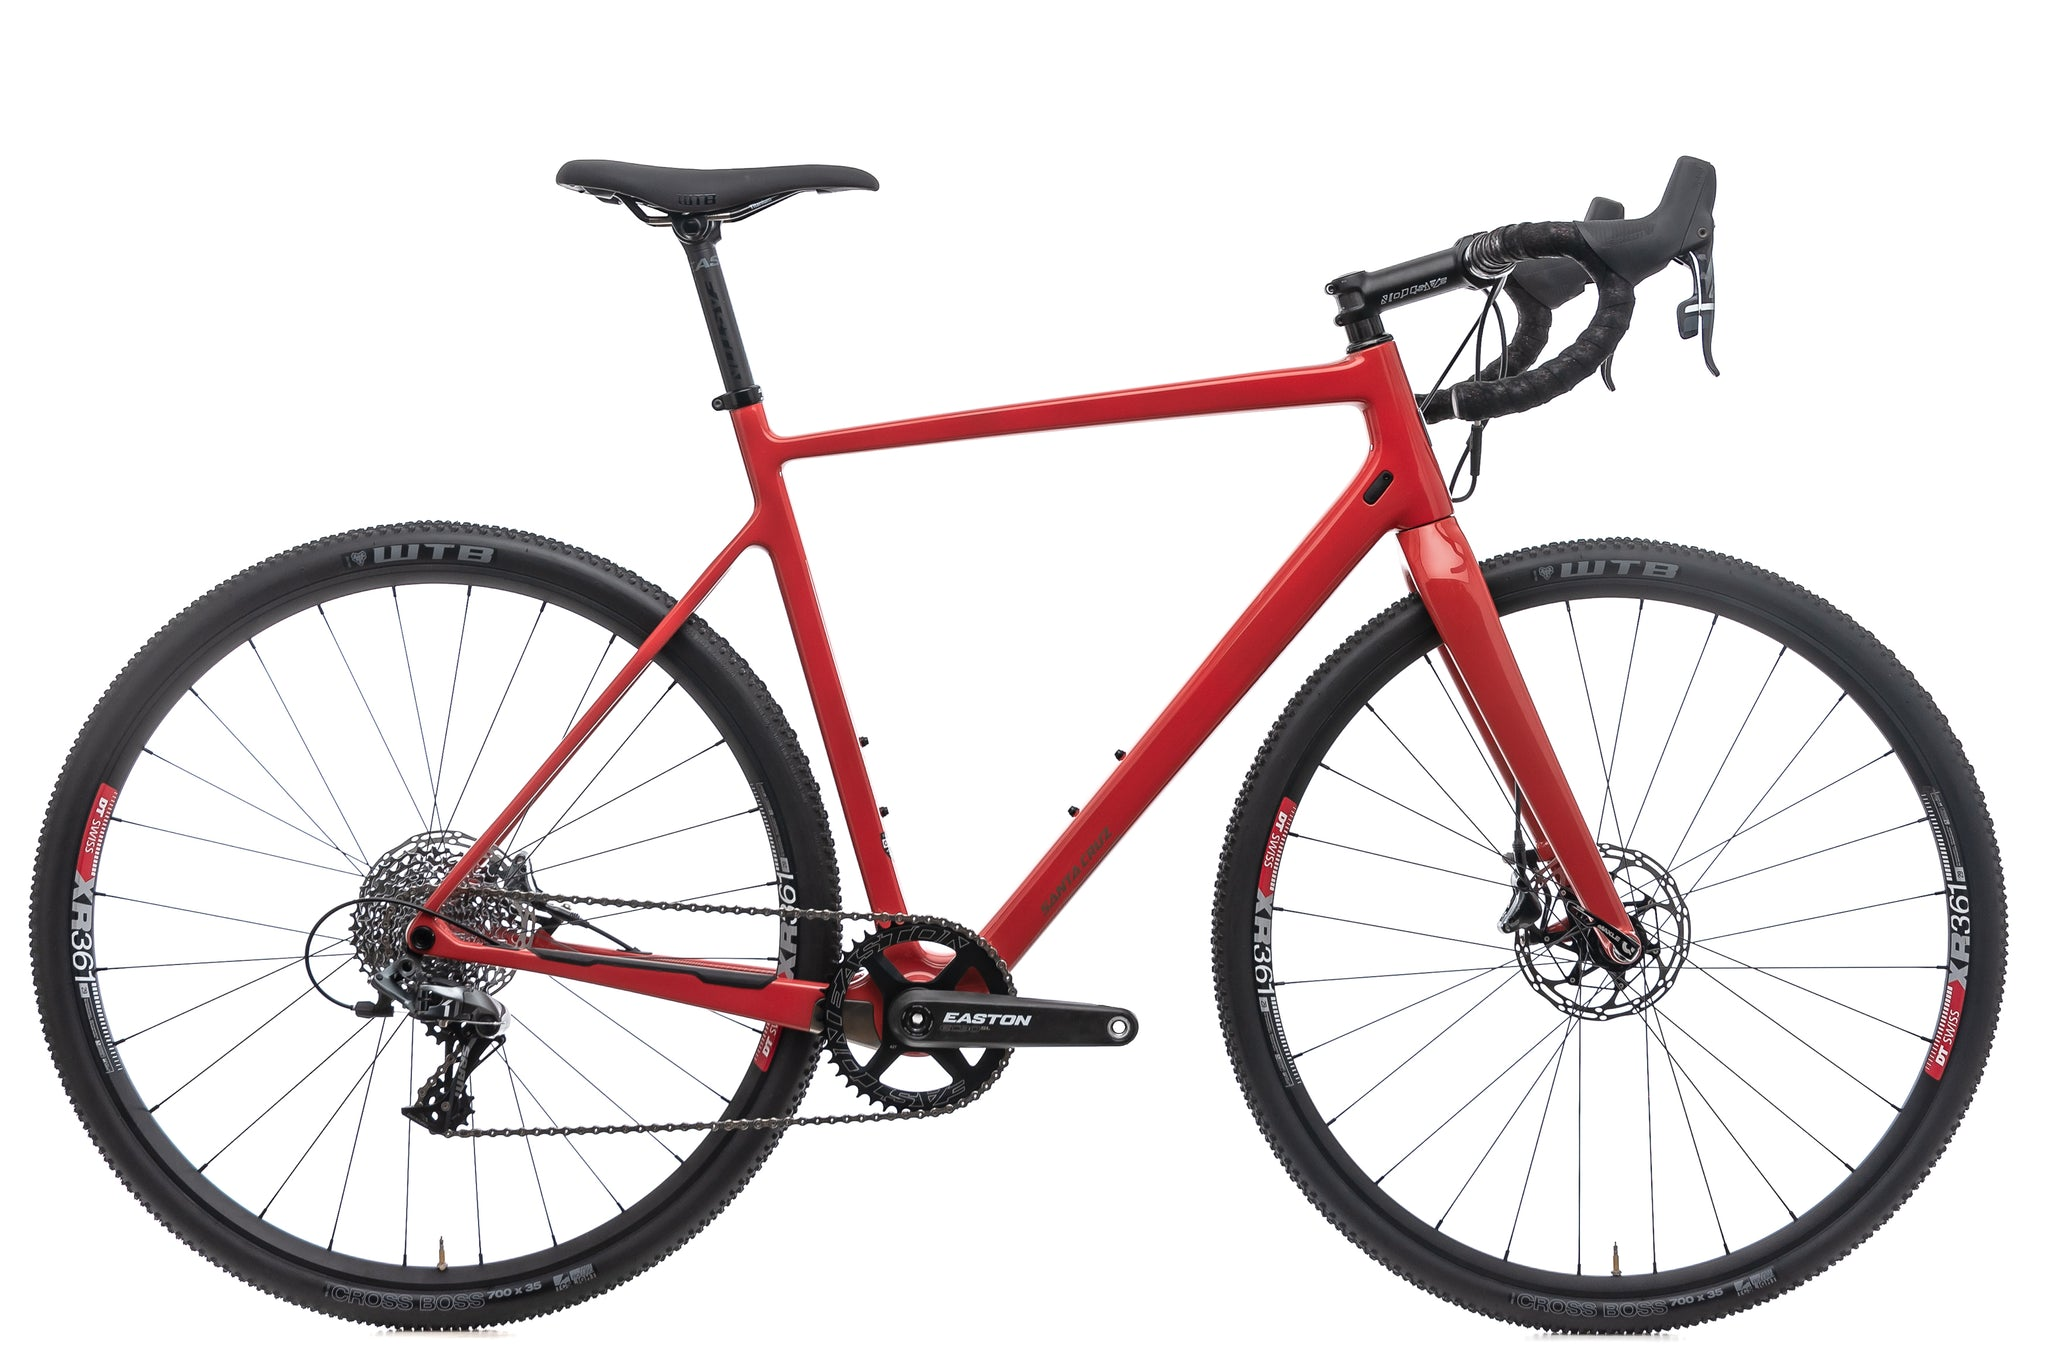 Santa Cruz Stigmata Used gravel cyclocross bike